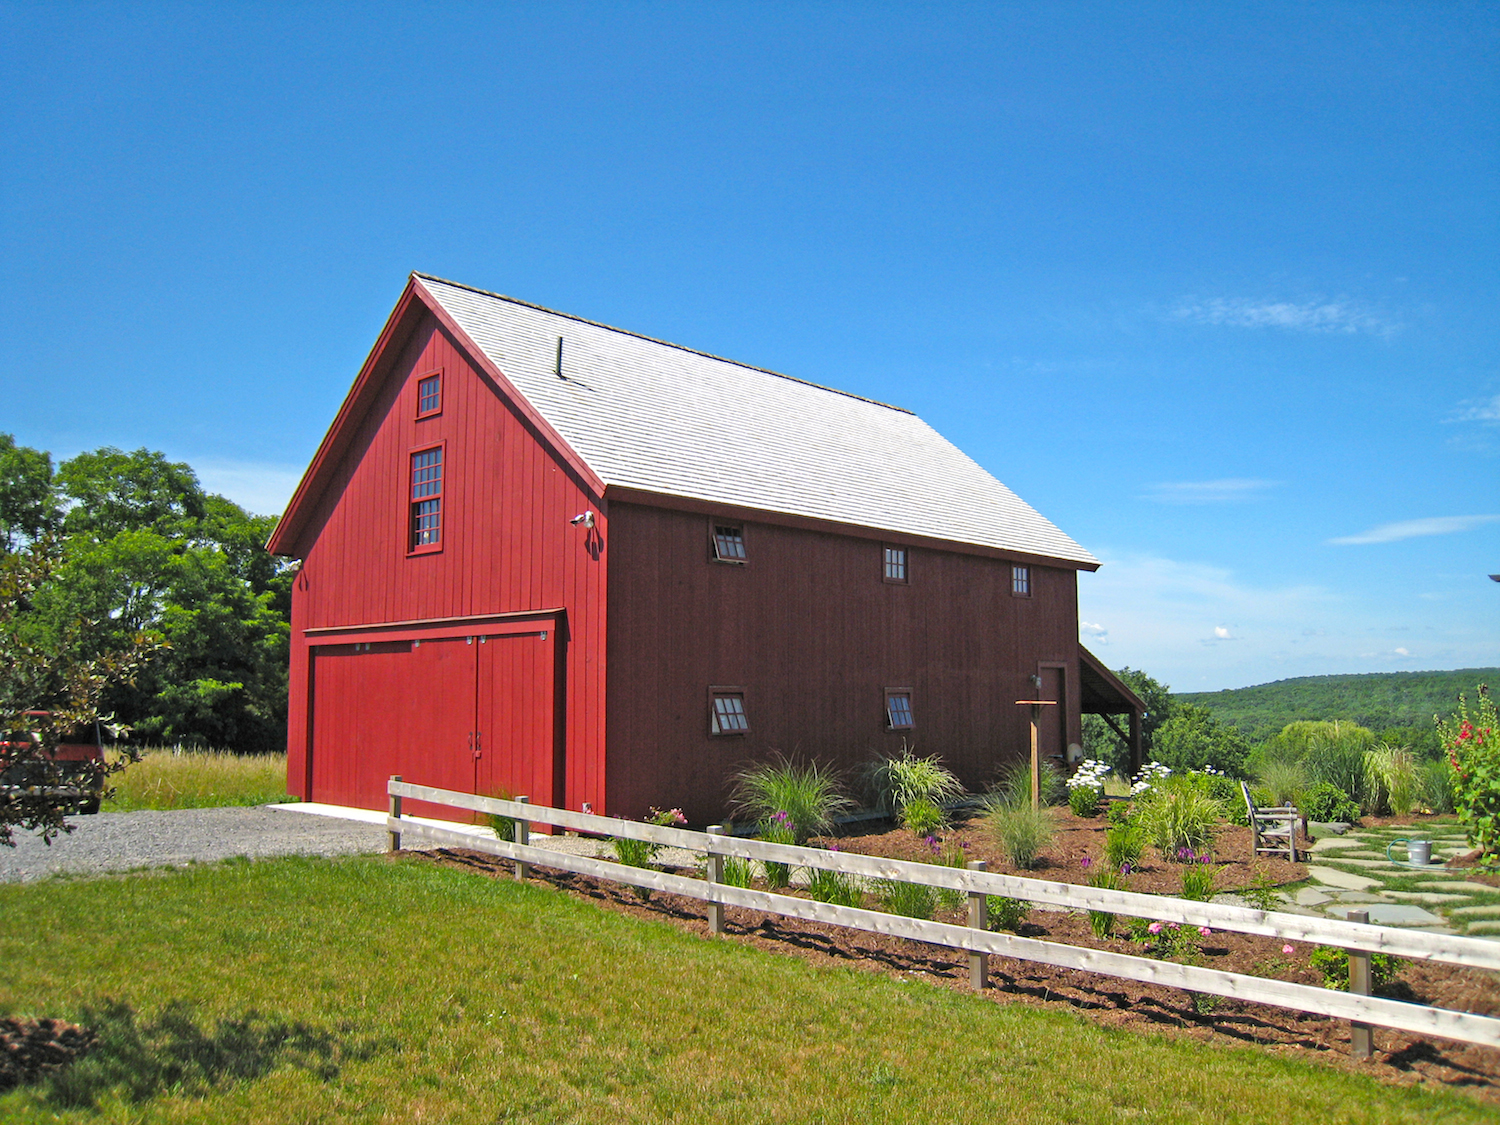 Ridgefield barn carriage barn photos the barn yard great for New england barns for sale